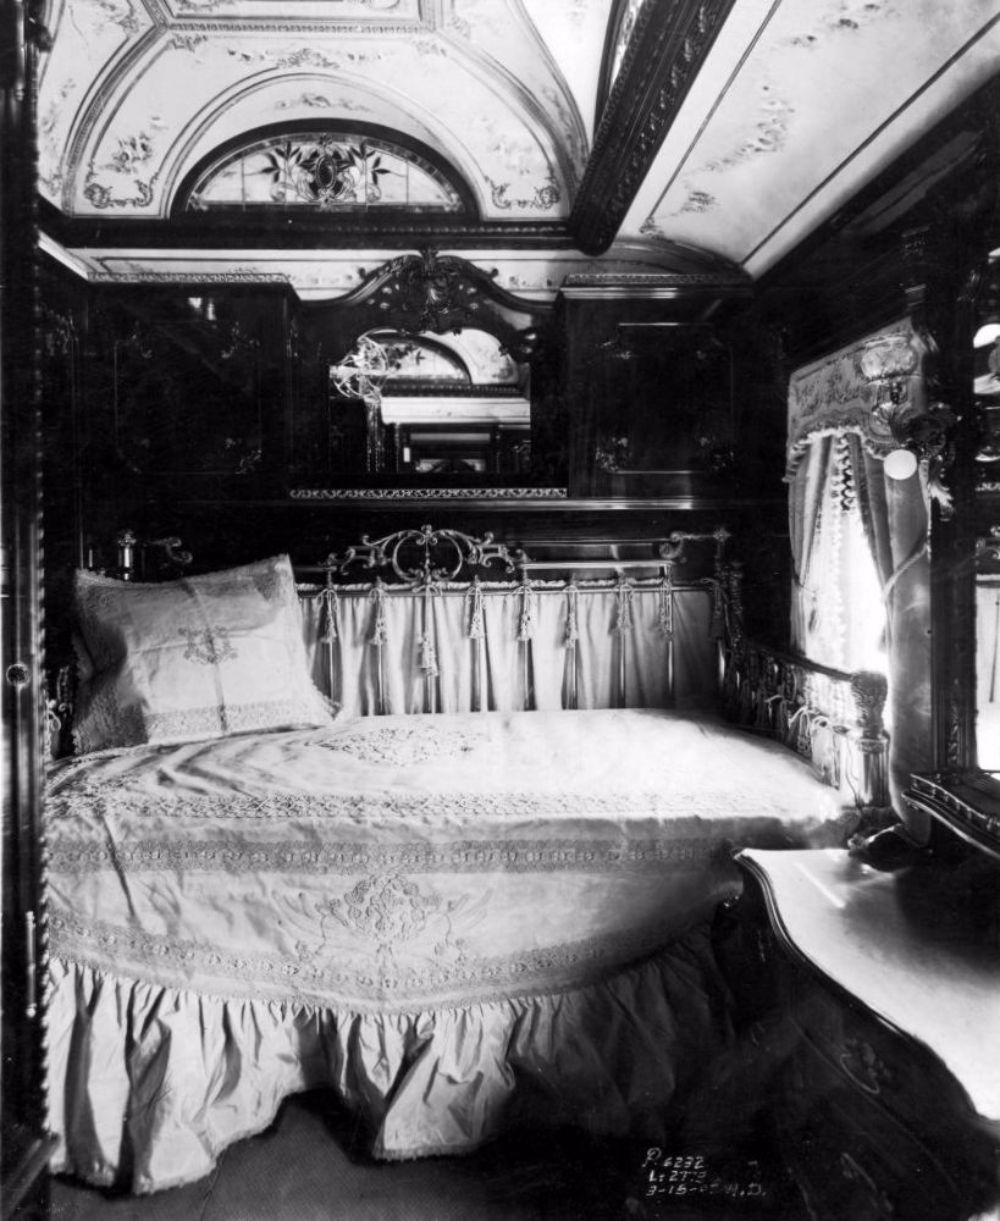 The Glory Days Of Train Travel: Inside The Pullman Train